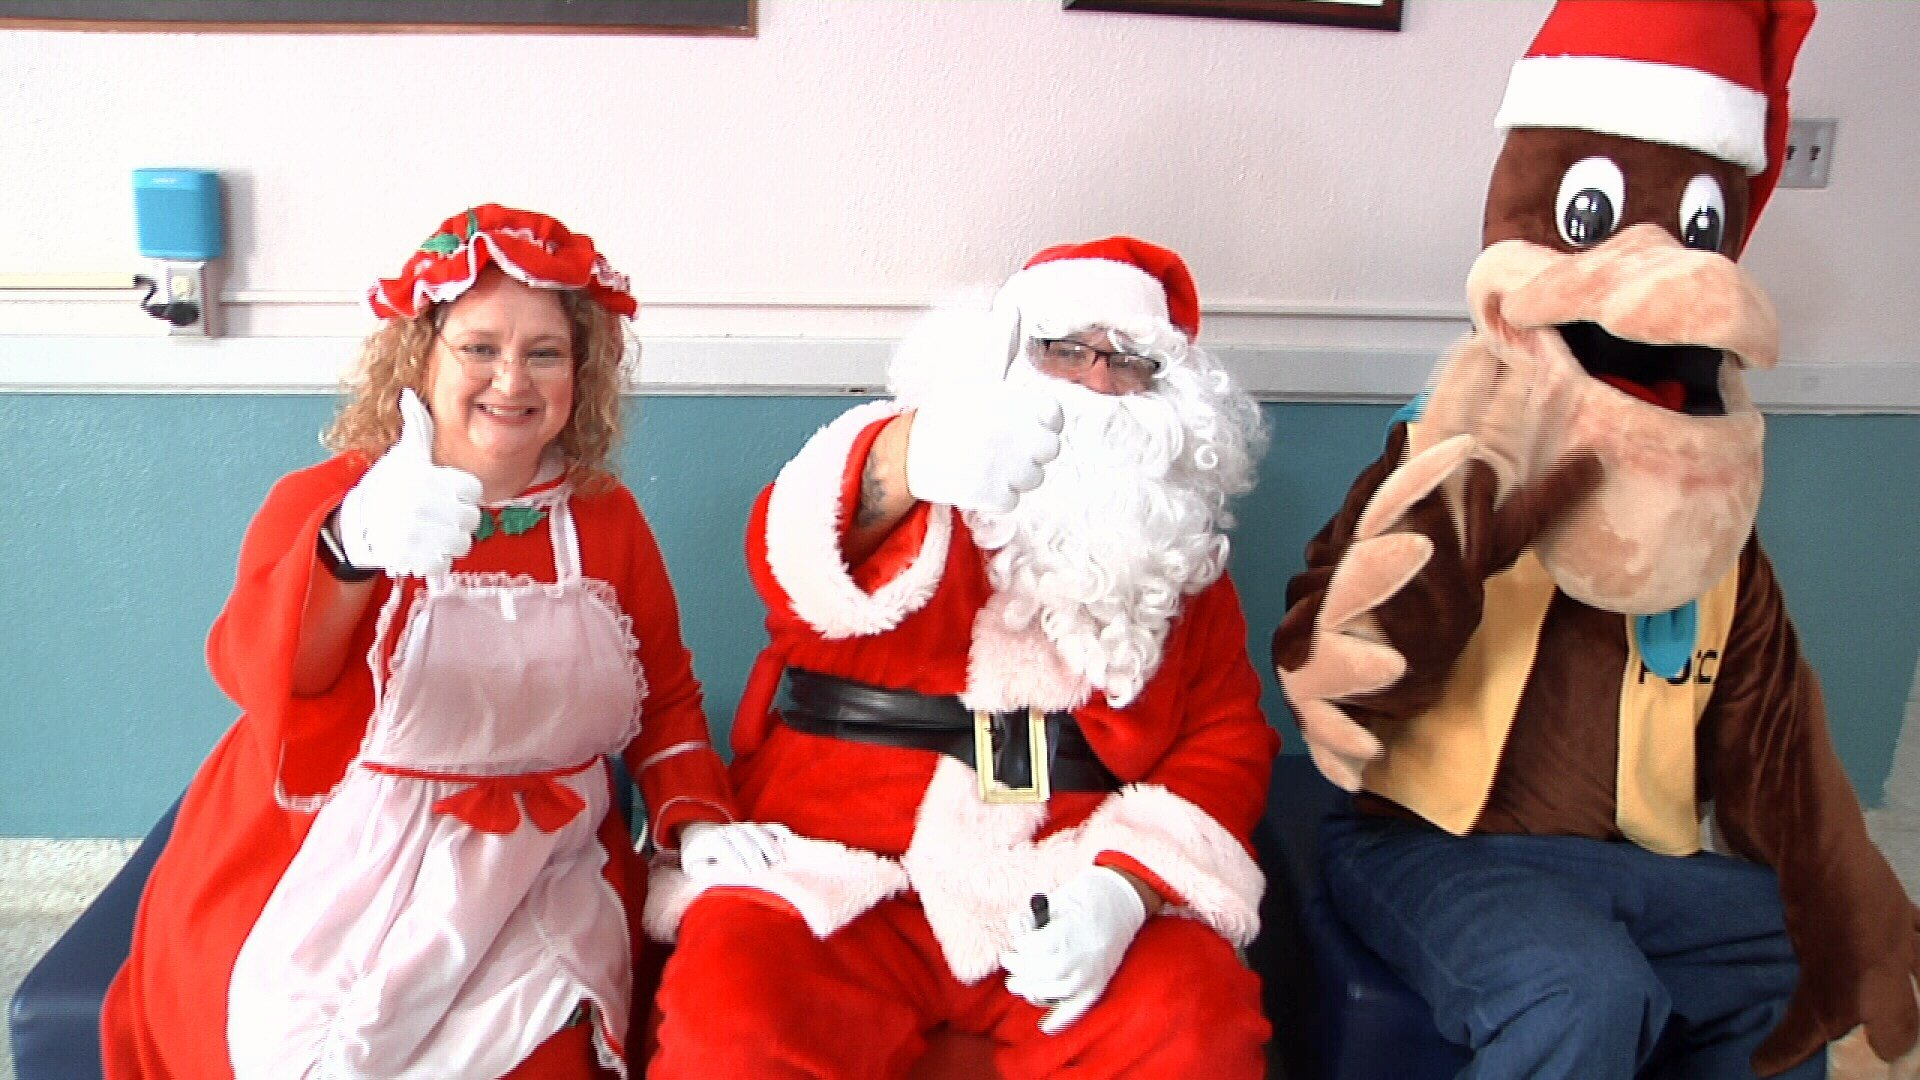 Mrs. Claus, Santa Claus and Pocca the Pelican attended the celebration.